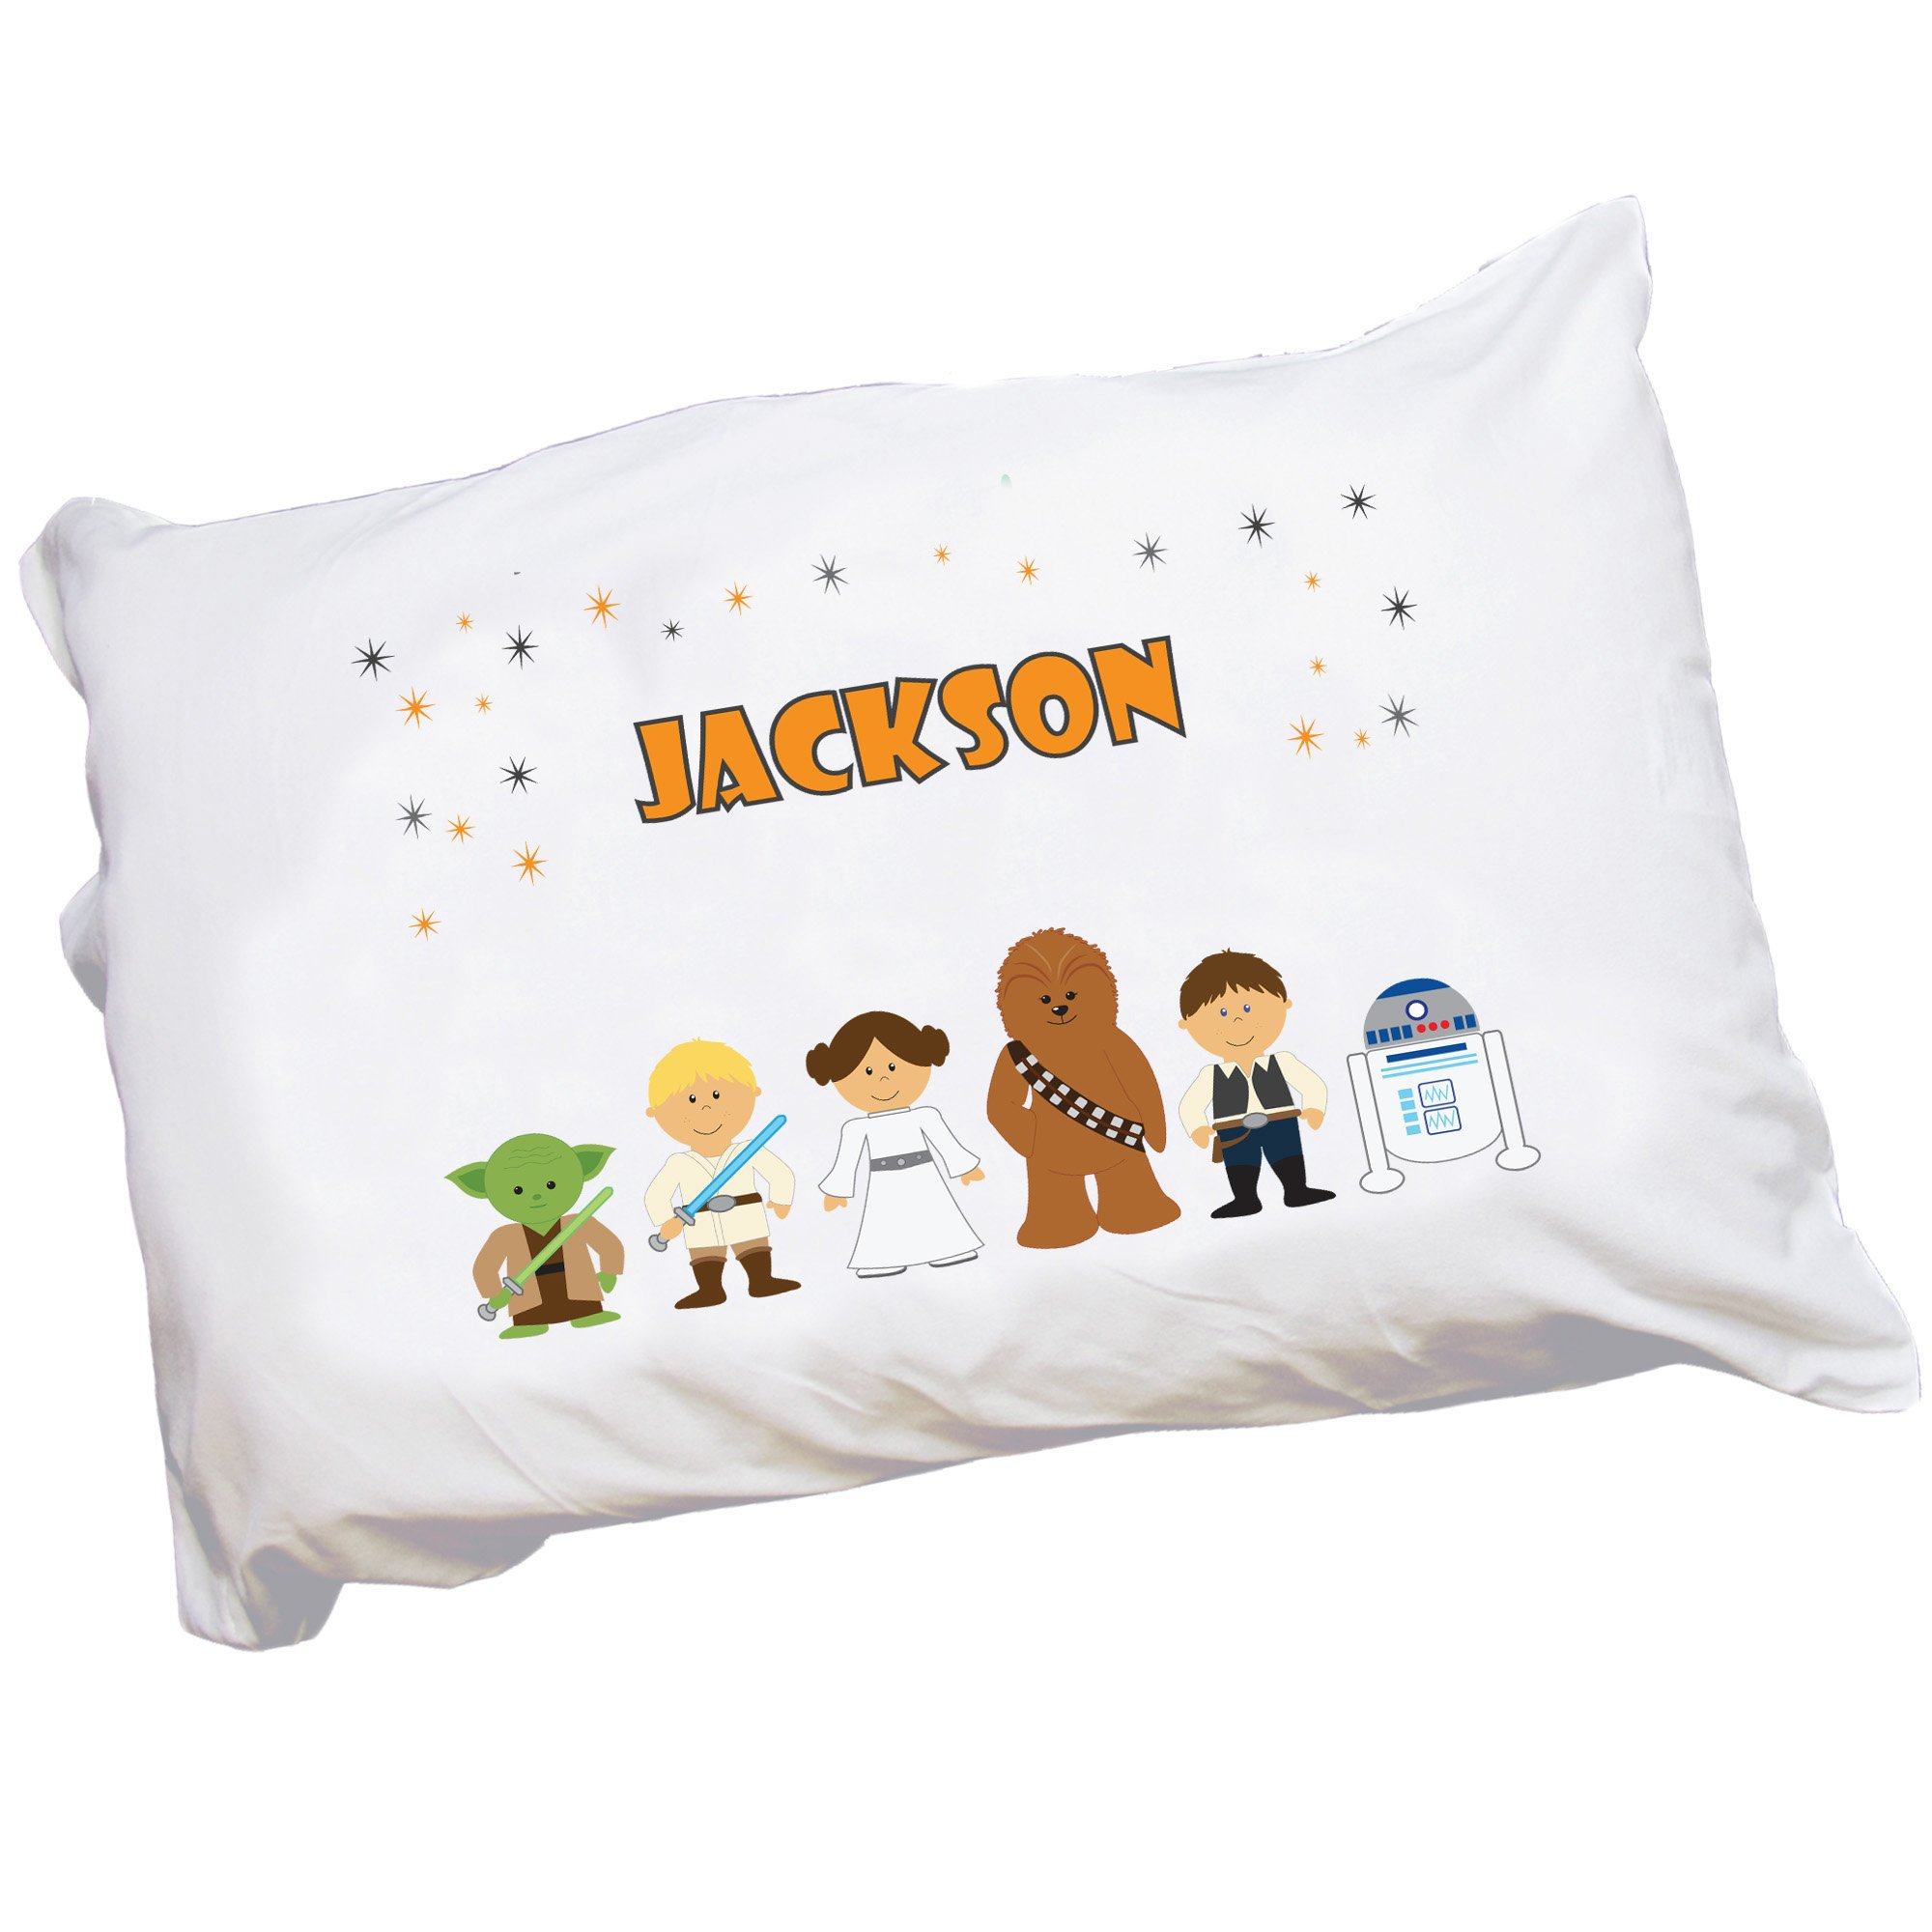 Personalized Childrens Pillowcase with Galaxy Friends design